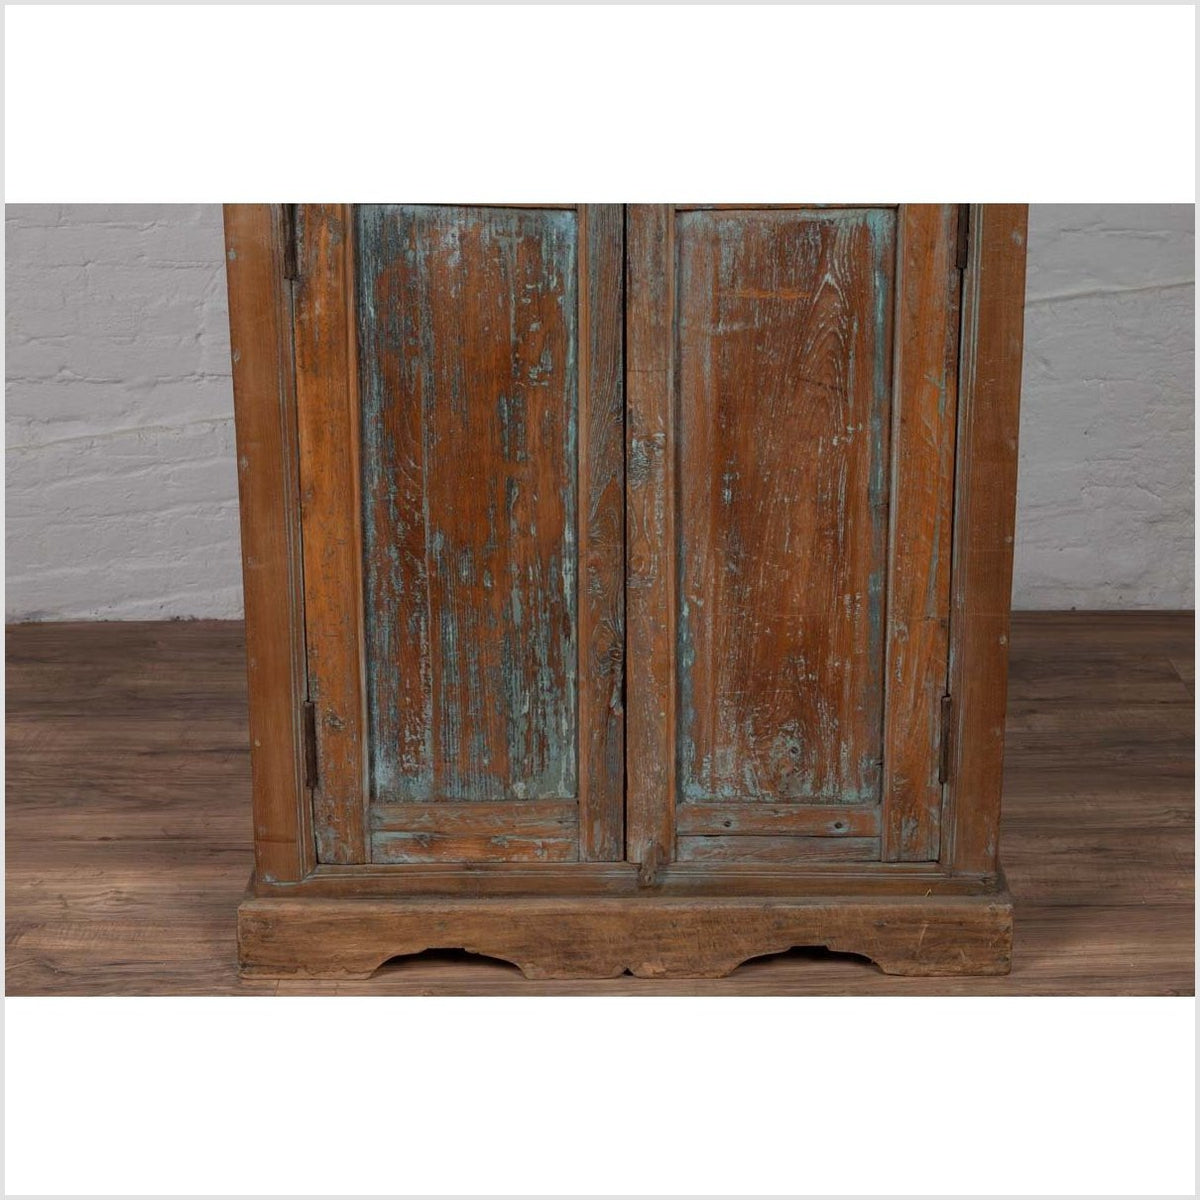 Early 20th Century Indian Rustic Wooden Kitchen Cabinet with Distressed Finish